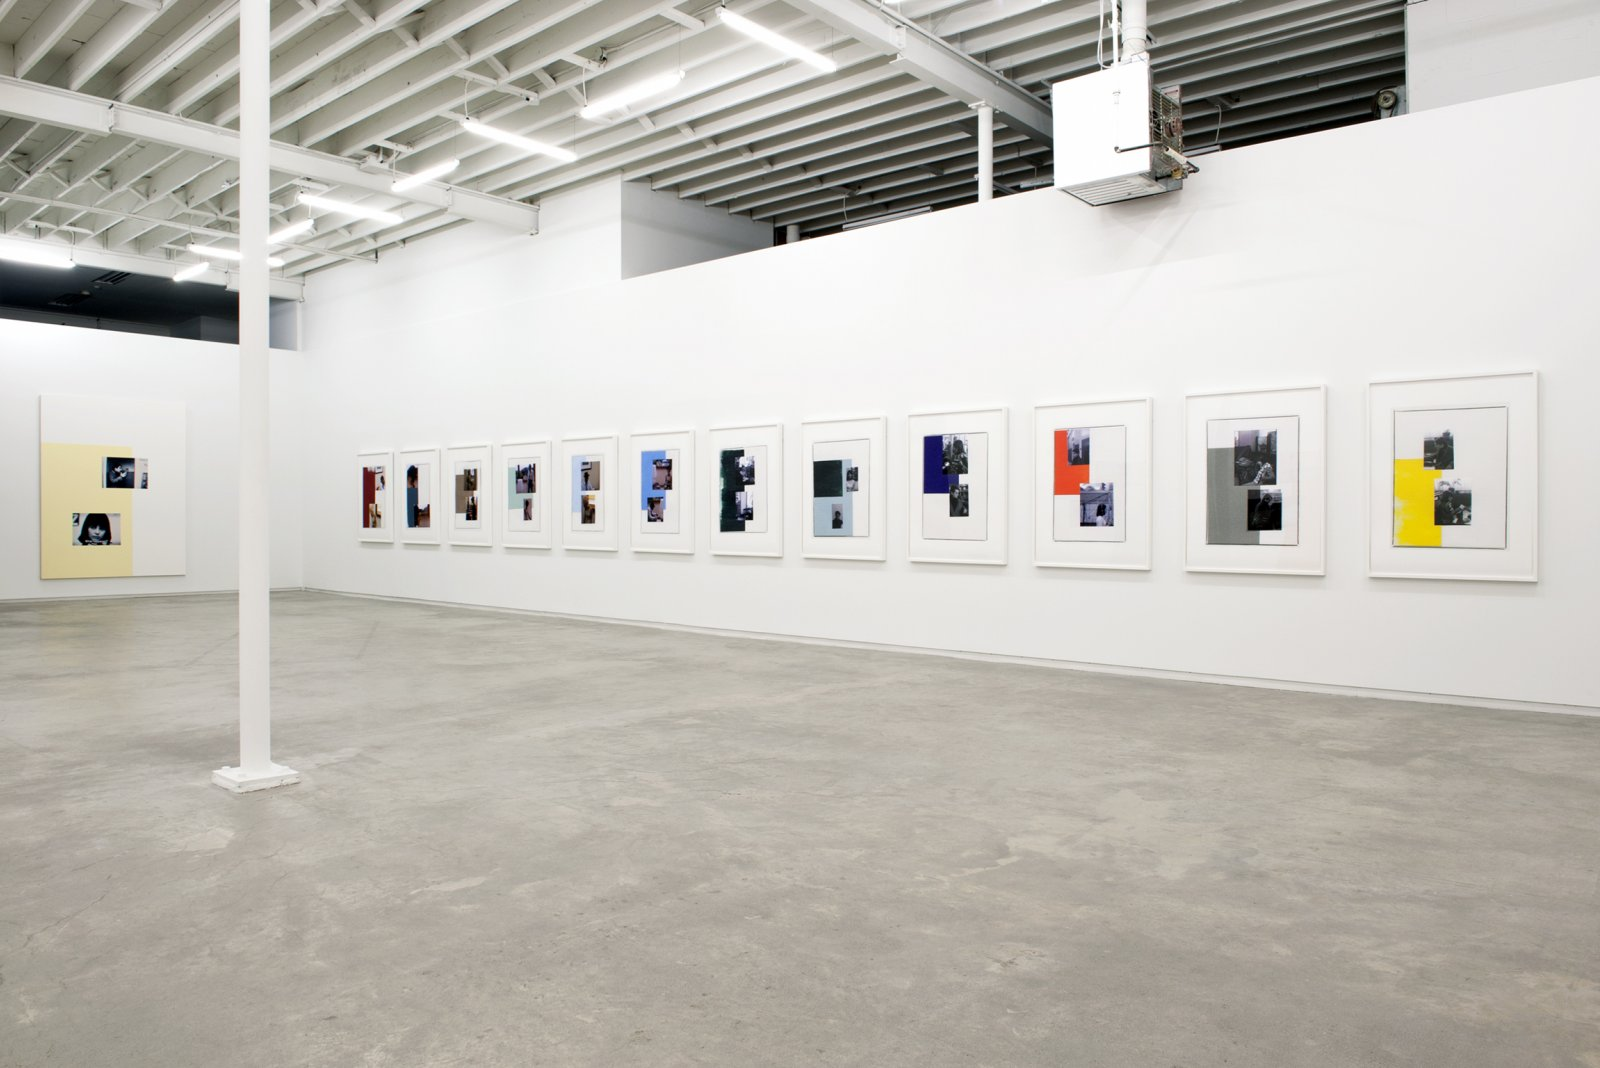 Ian Wallace, installation view, Masculin/Féminin, Catriona Jeffries, 2012  by Ian Wallace